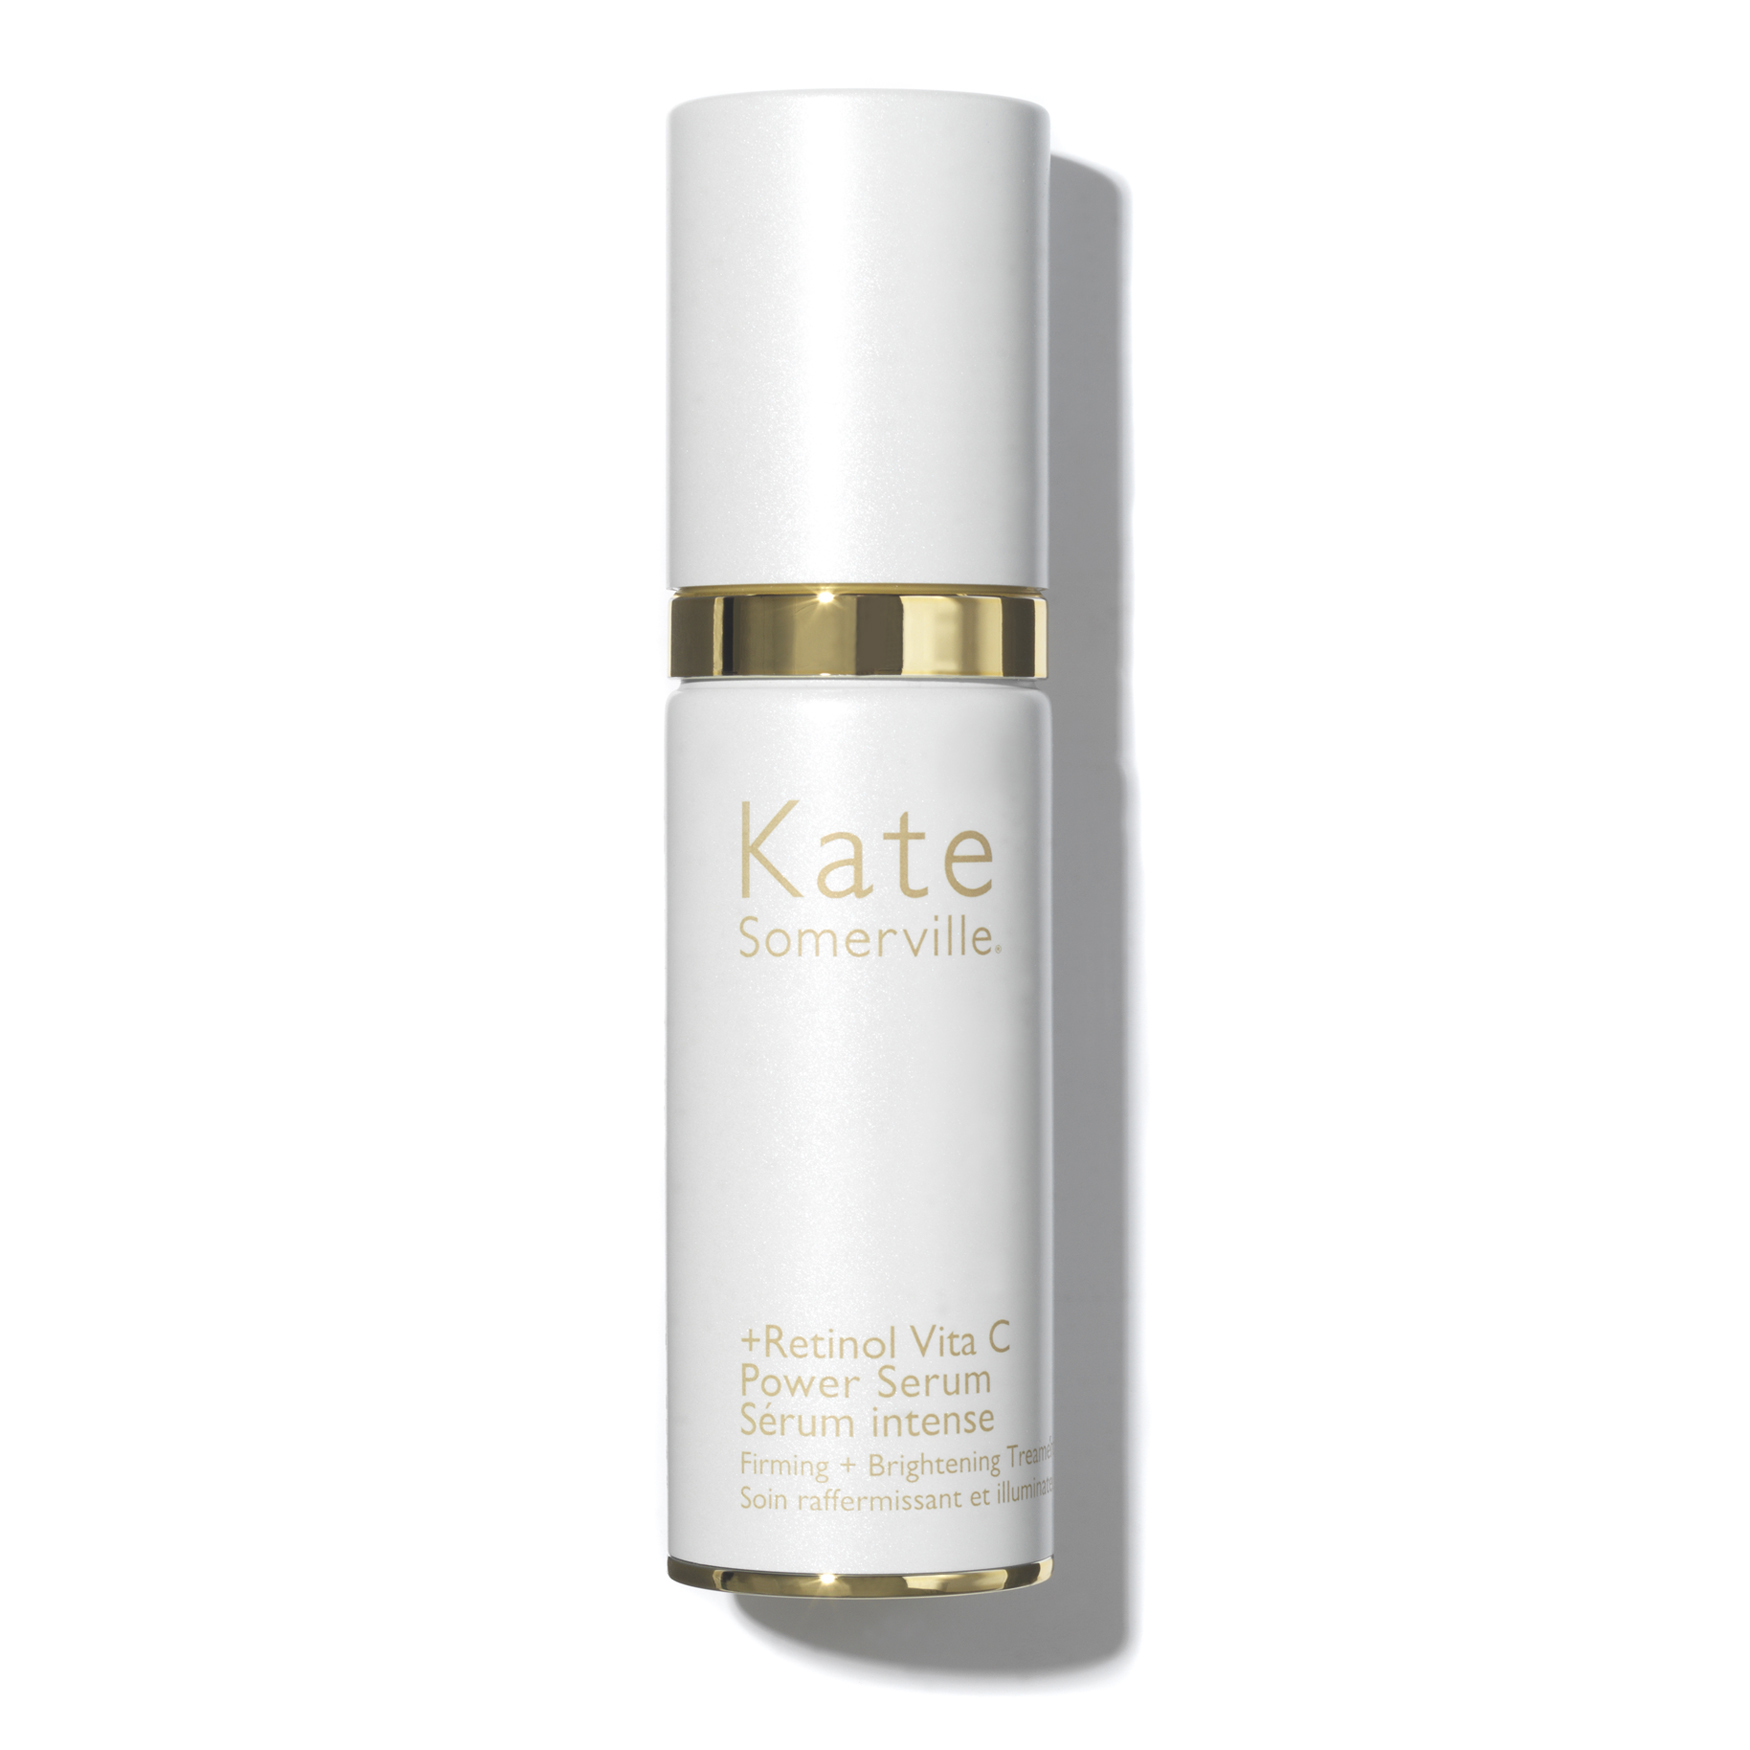 Sephora Post Xmas Sale Kate Somerville Retinol Vita C Power Serum